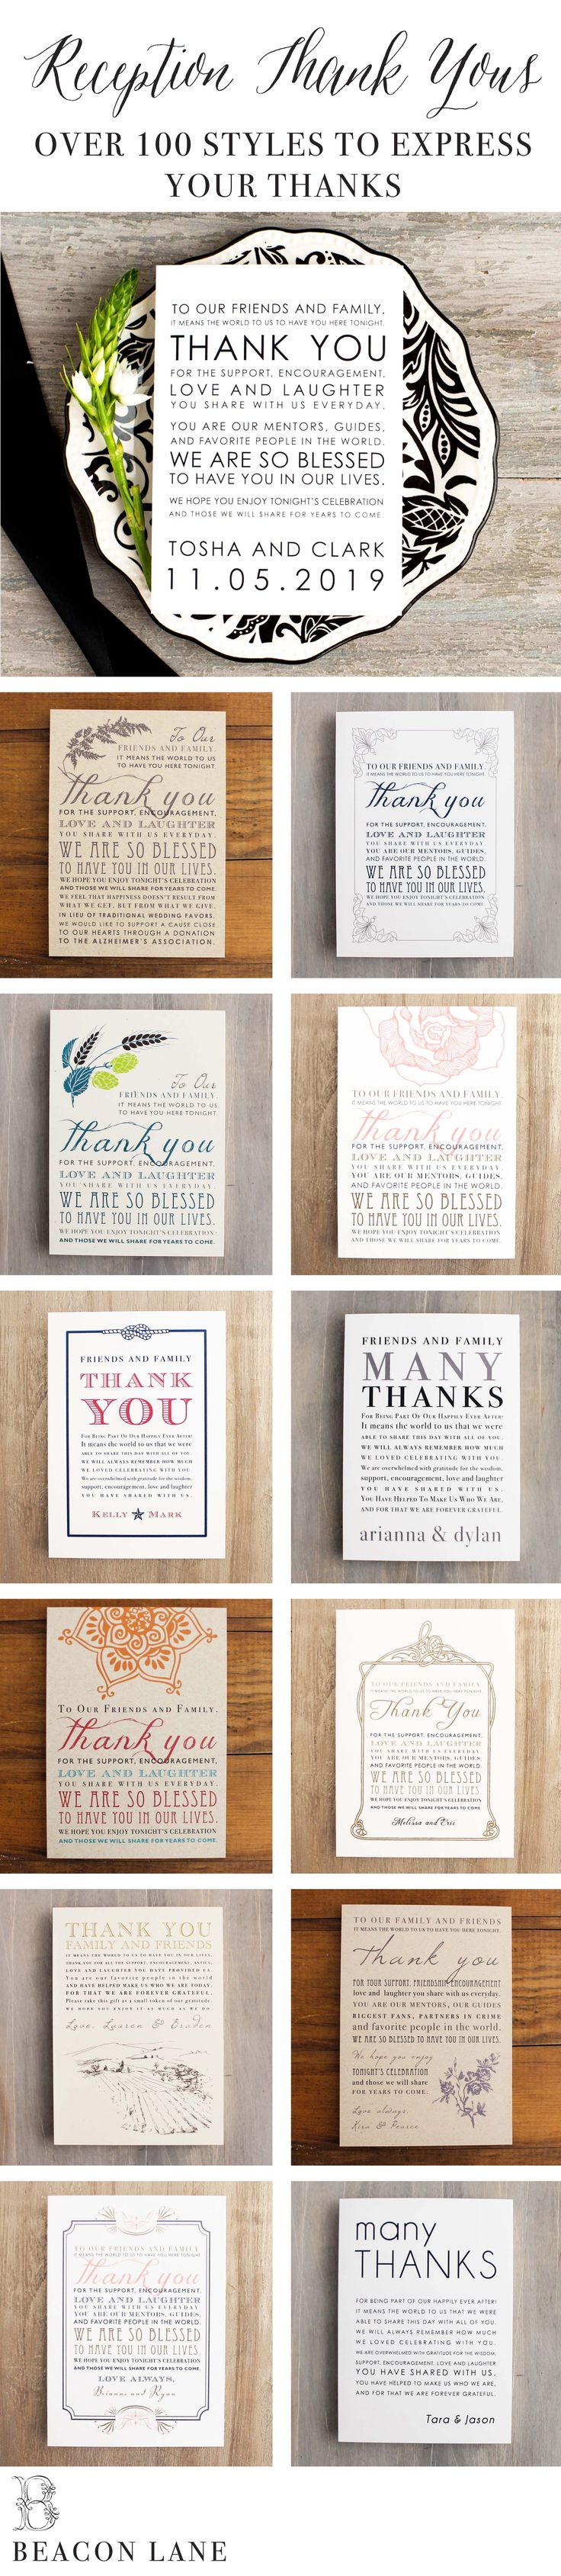 Our Top Favorite Table Top Wedding Reception Thank You Signs With over 100 designs to